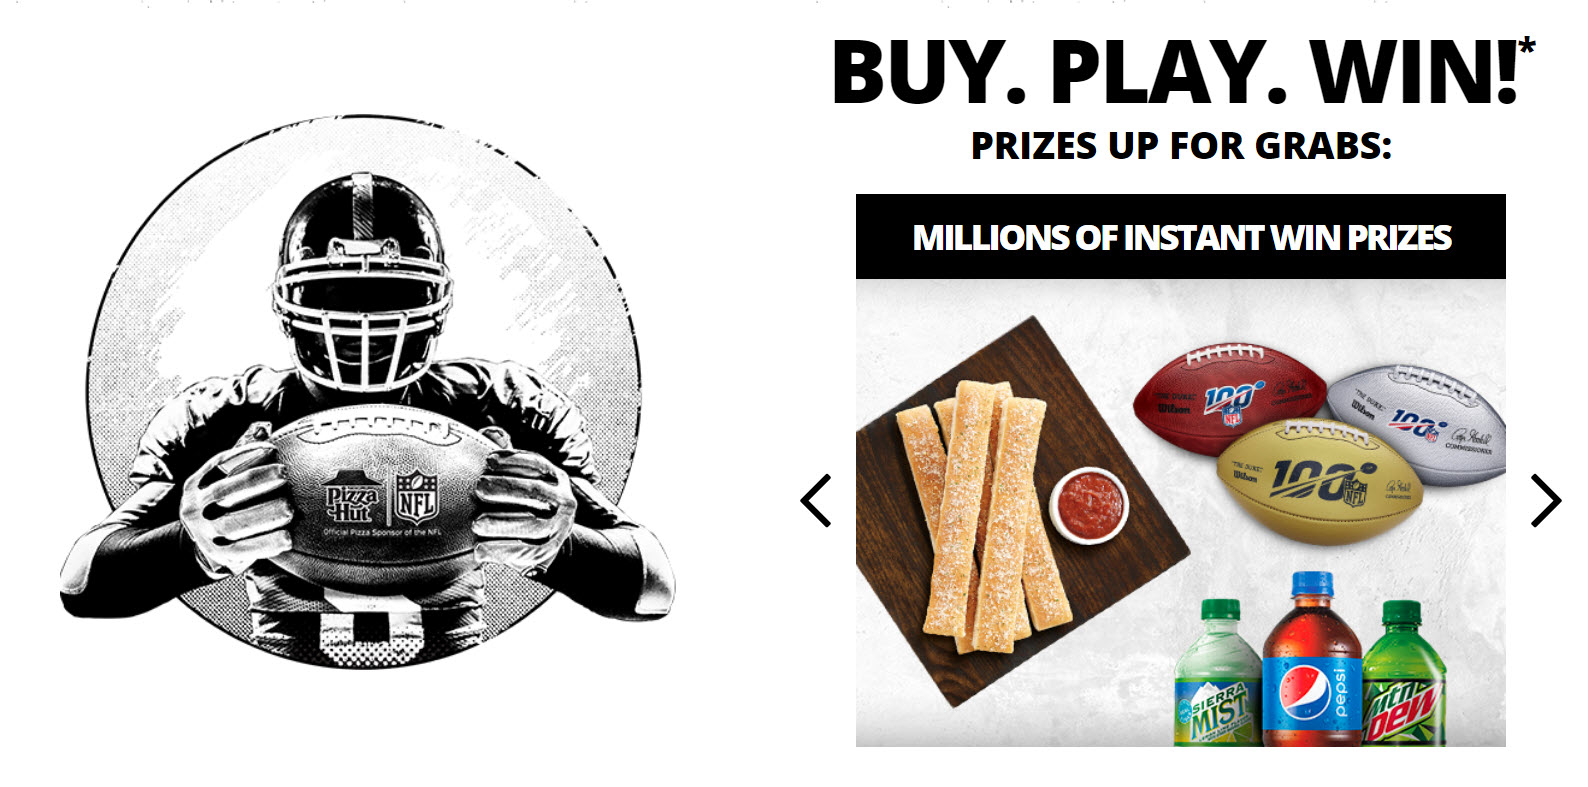 10,013,438 PRIZES! Play the Pizza Hut Hut Hut Win Instant Win Game daily for your chance to win a trip for two to Miami, Florida to attend Super Bowl LIV or other great NFL trips and Pizza Hut prizes.